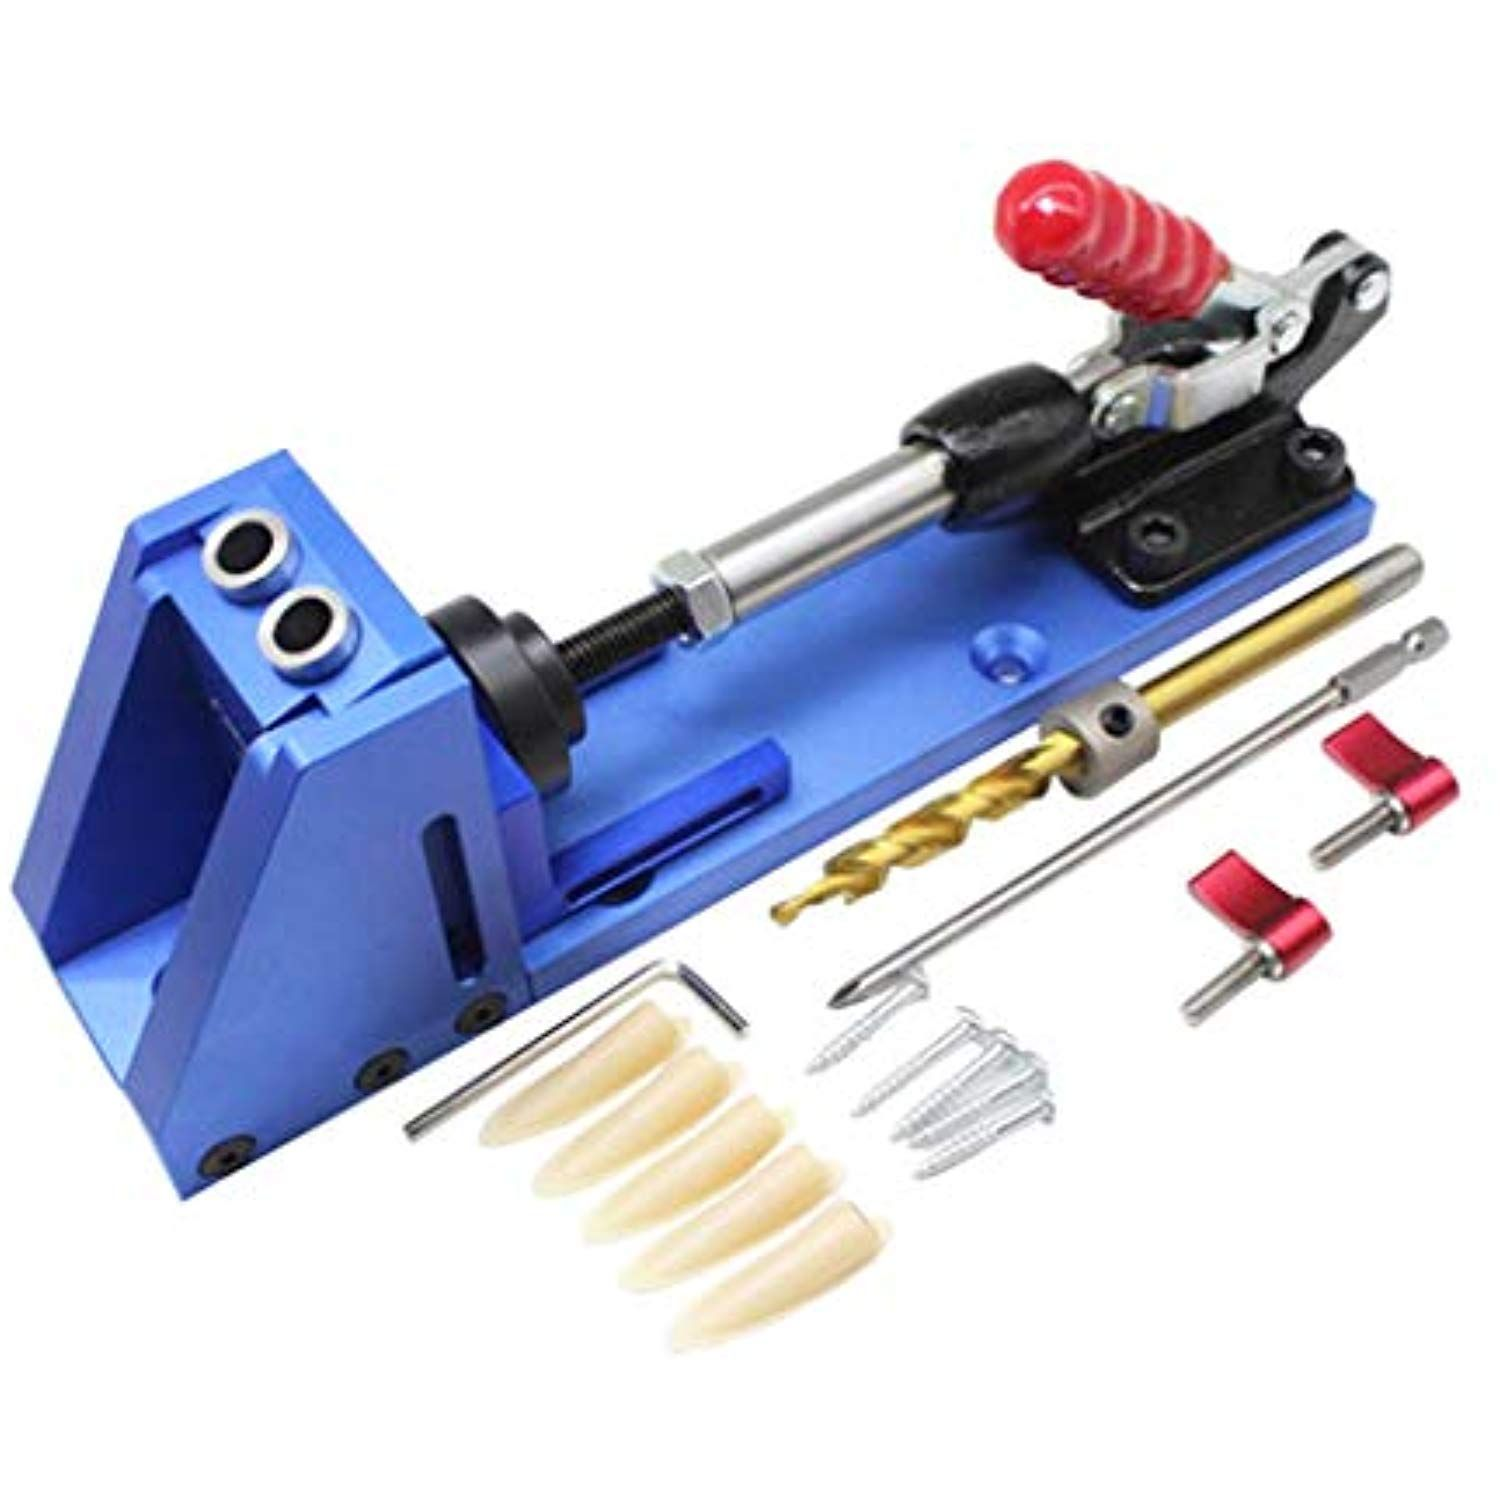 Portable Pocket Three Inclined Hole Drill Jig Joinery System Woodworking Bit Kit